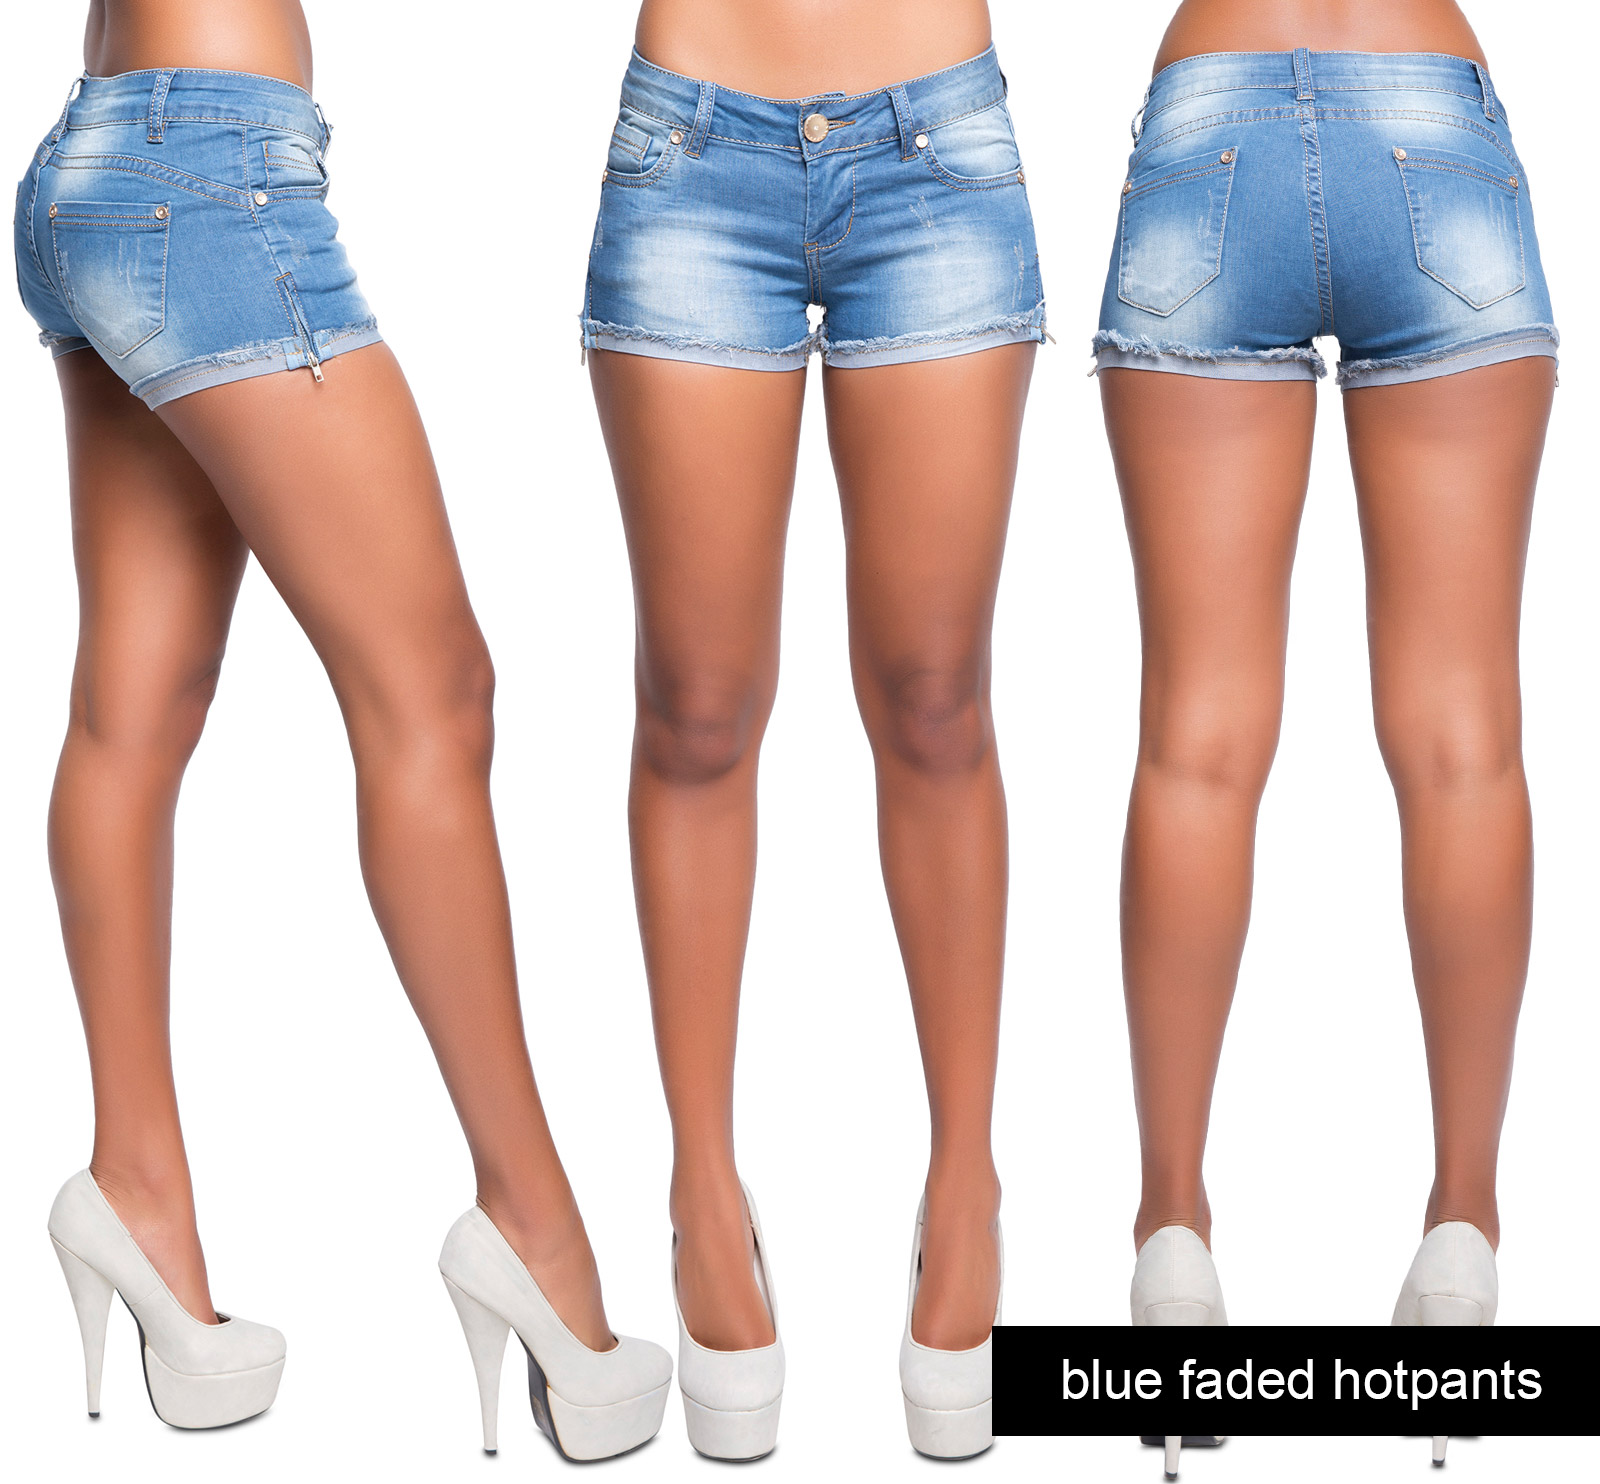 Hot shorts images